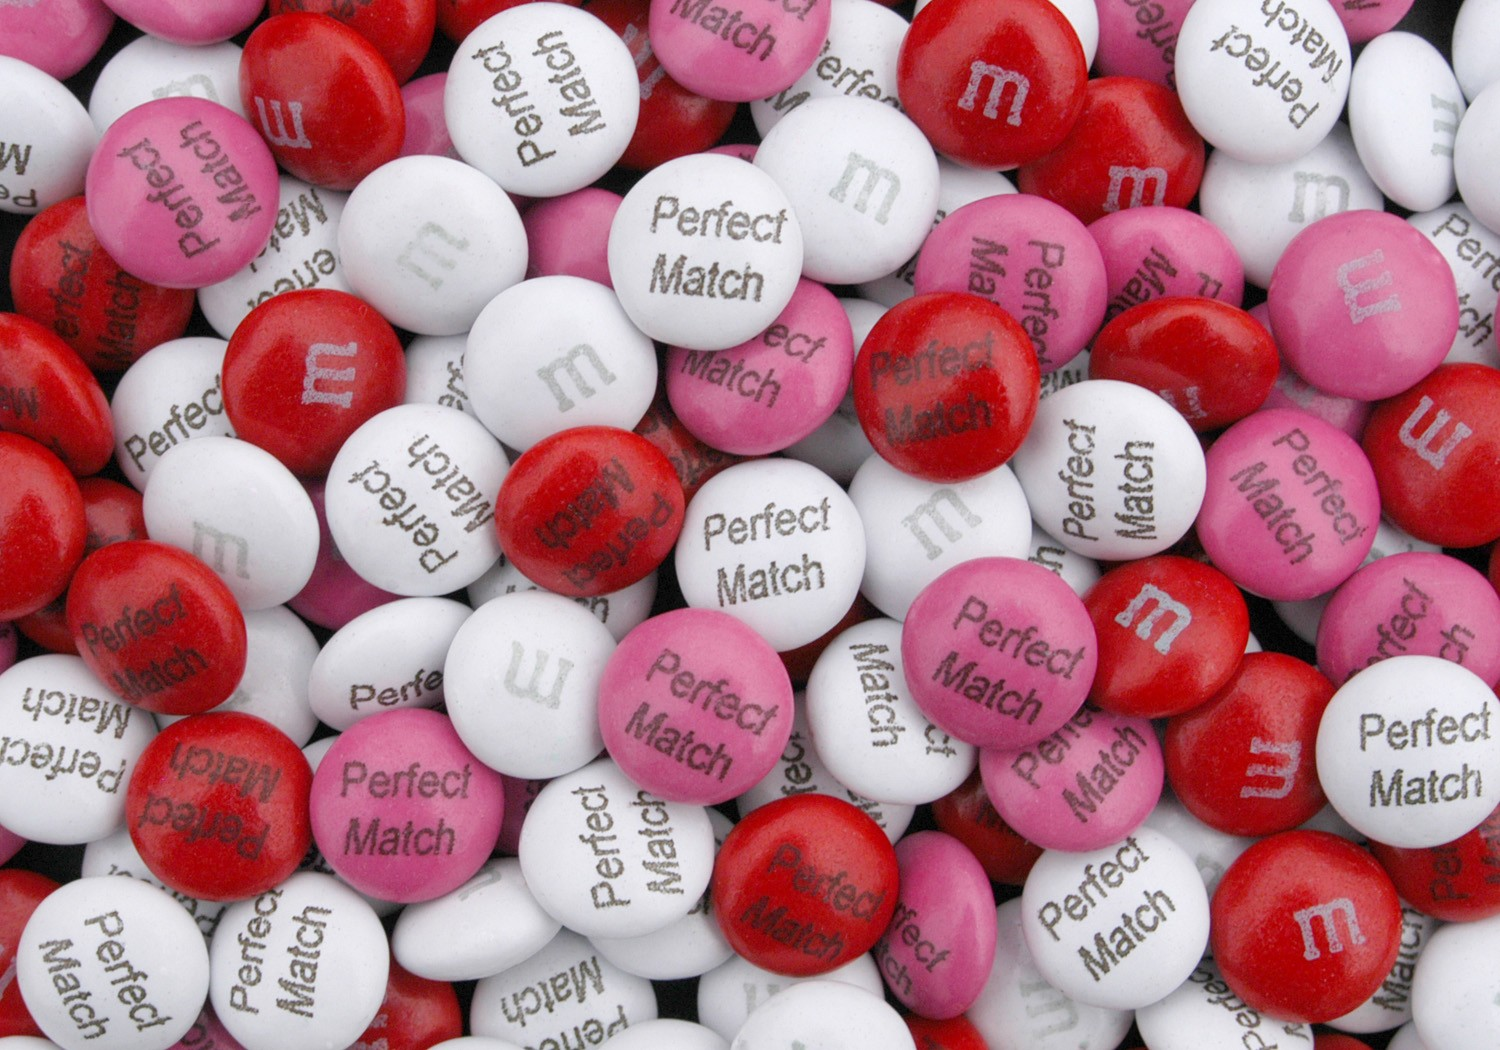 Create personalized M&Ms with your own inscriptions and in your own color scheme for less with My M&Ms coupons. Free shipping - coupon codes Look here for My M&M's free shipping coupon codes.